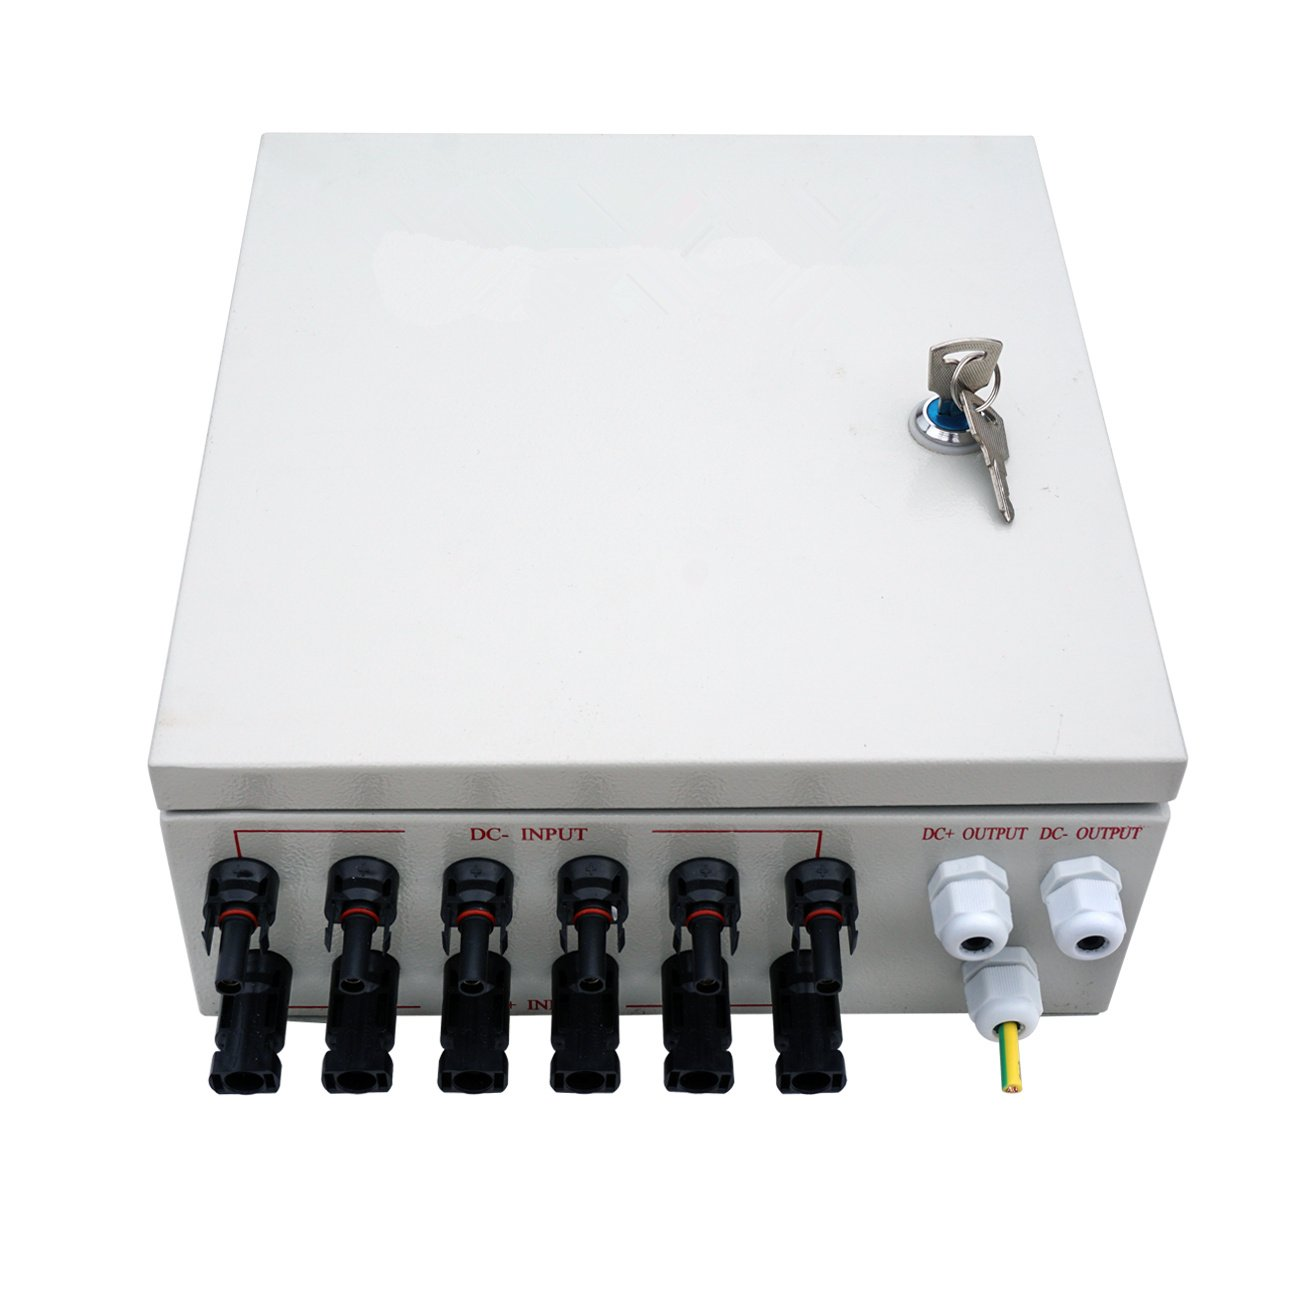 amazon com : eco llc 6 string pv combiner box 10a rated current with  lighting arreste and grounding bus-bar ideal for off-grid solar system :  garden &